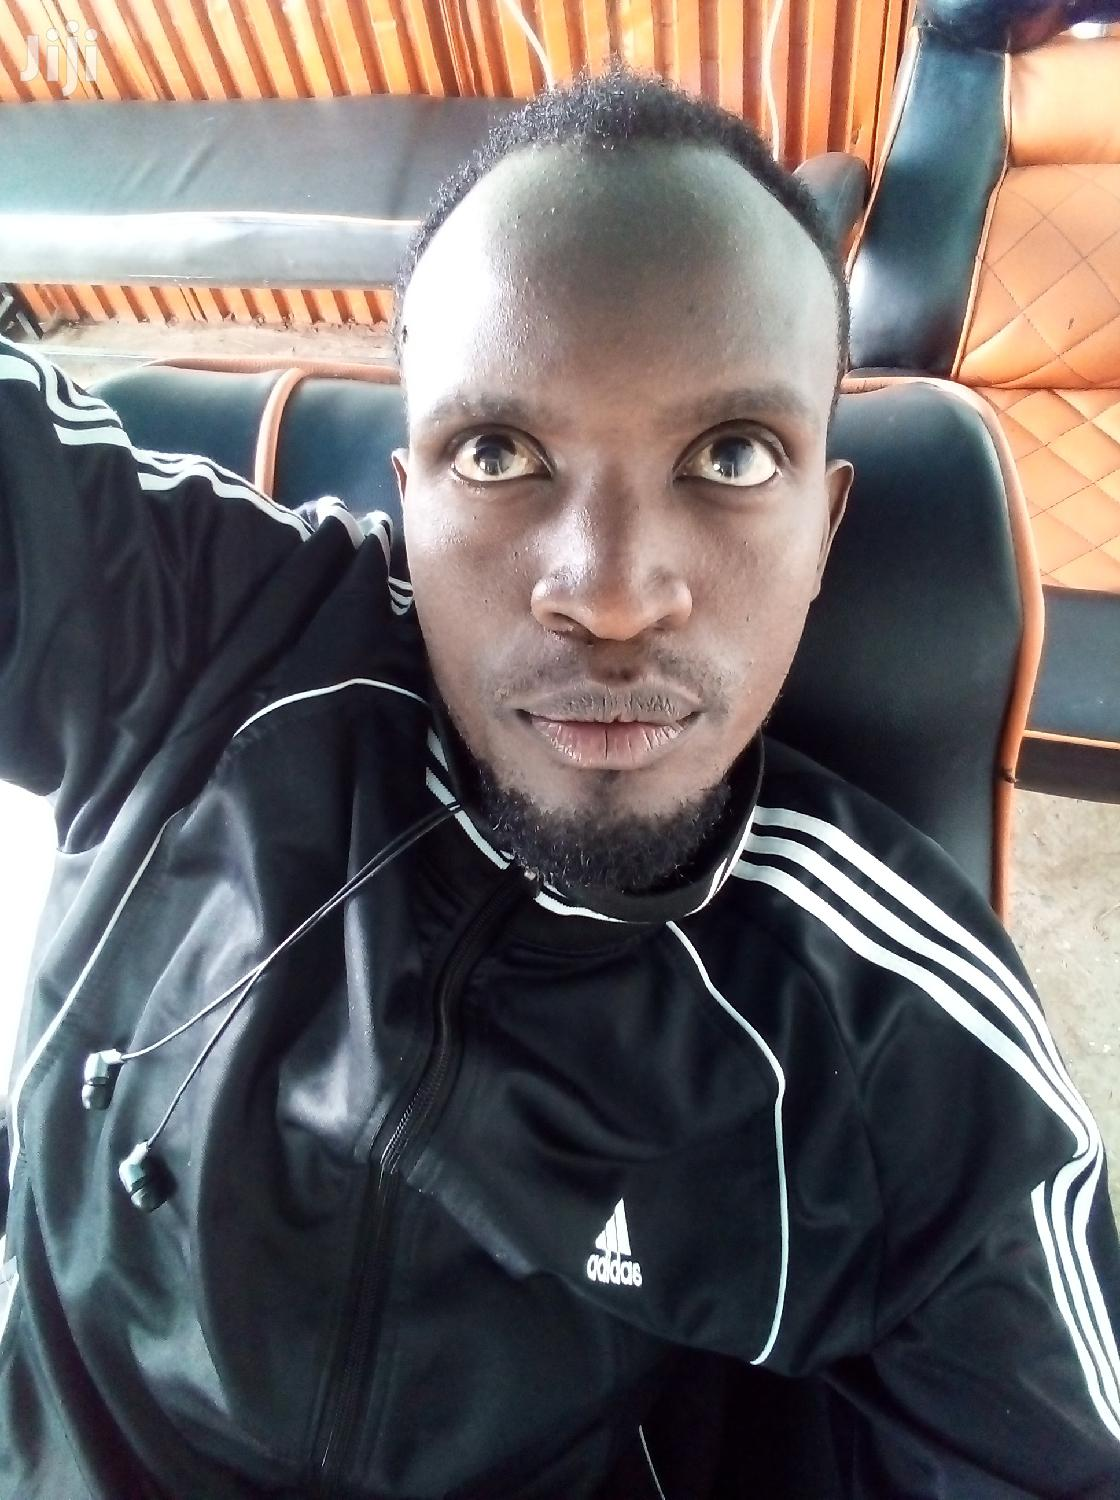 Am Victor Musyoki,Am 29 Years Old Am Married And Am Ready To Work Eny